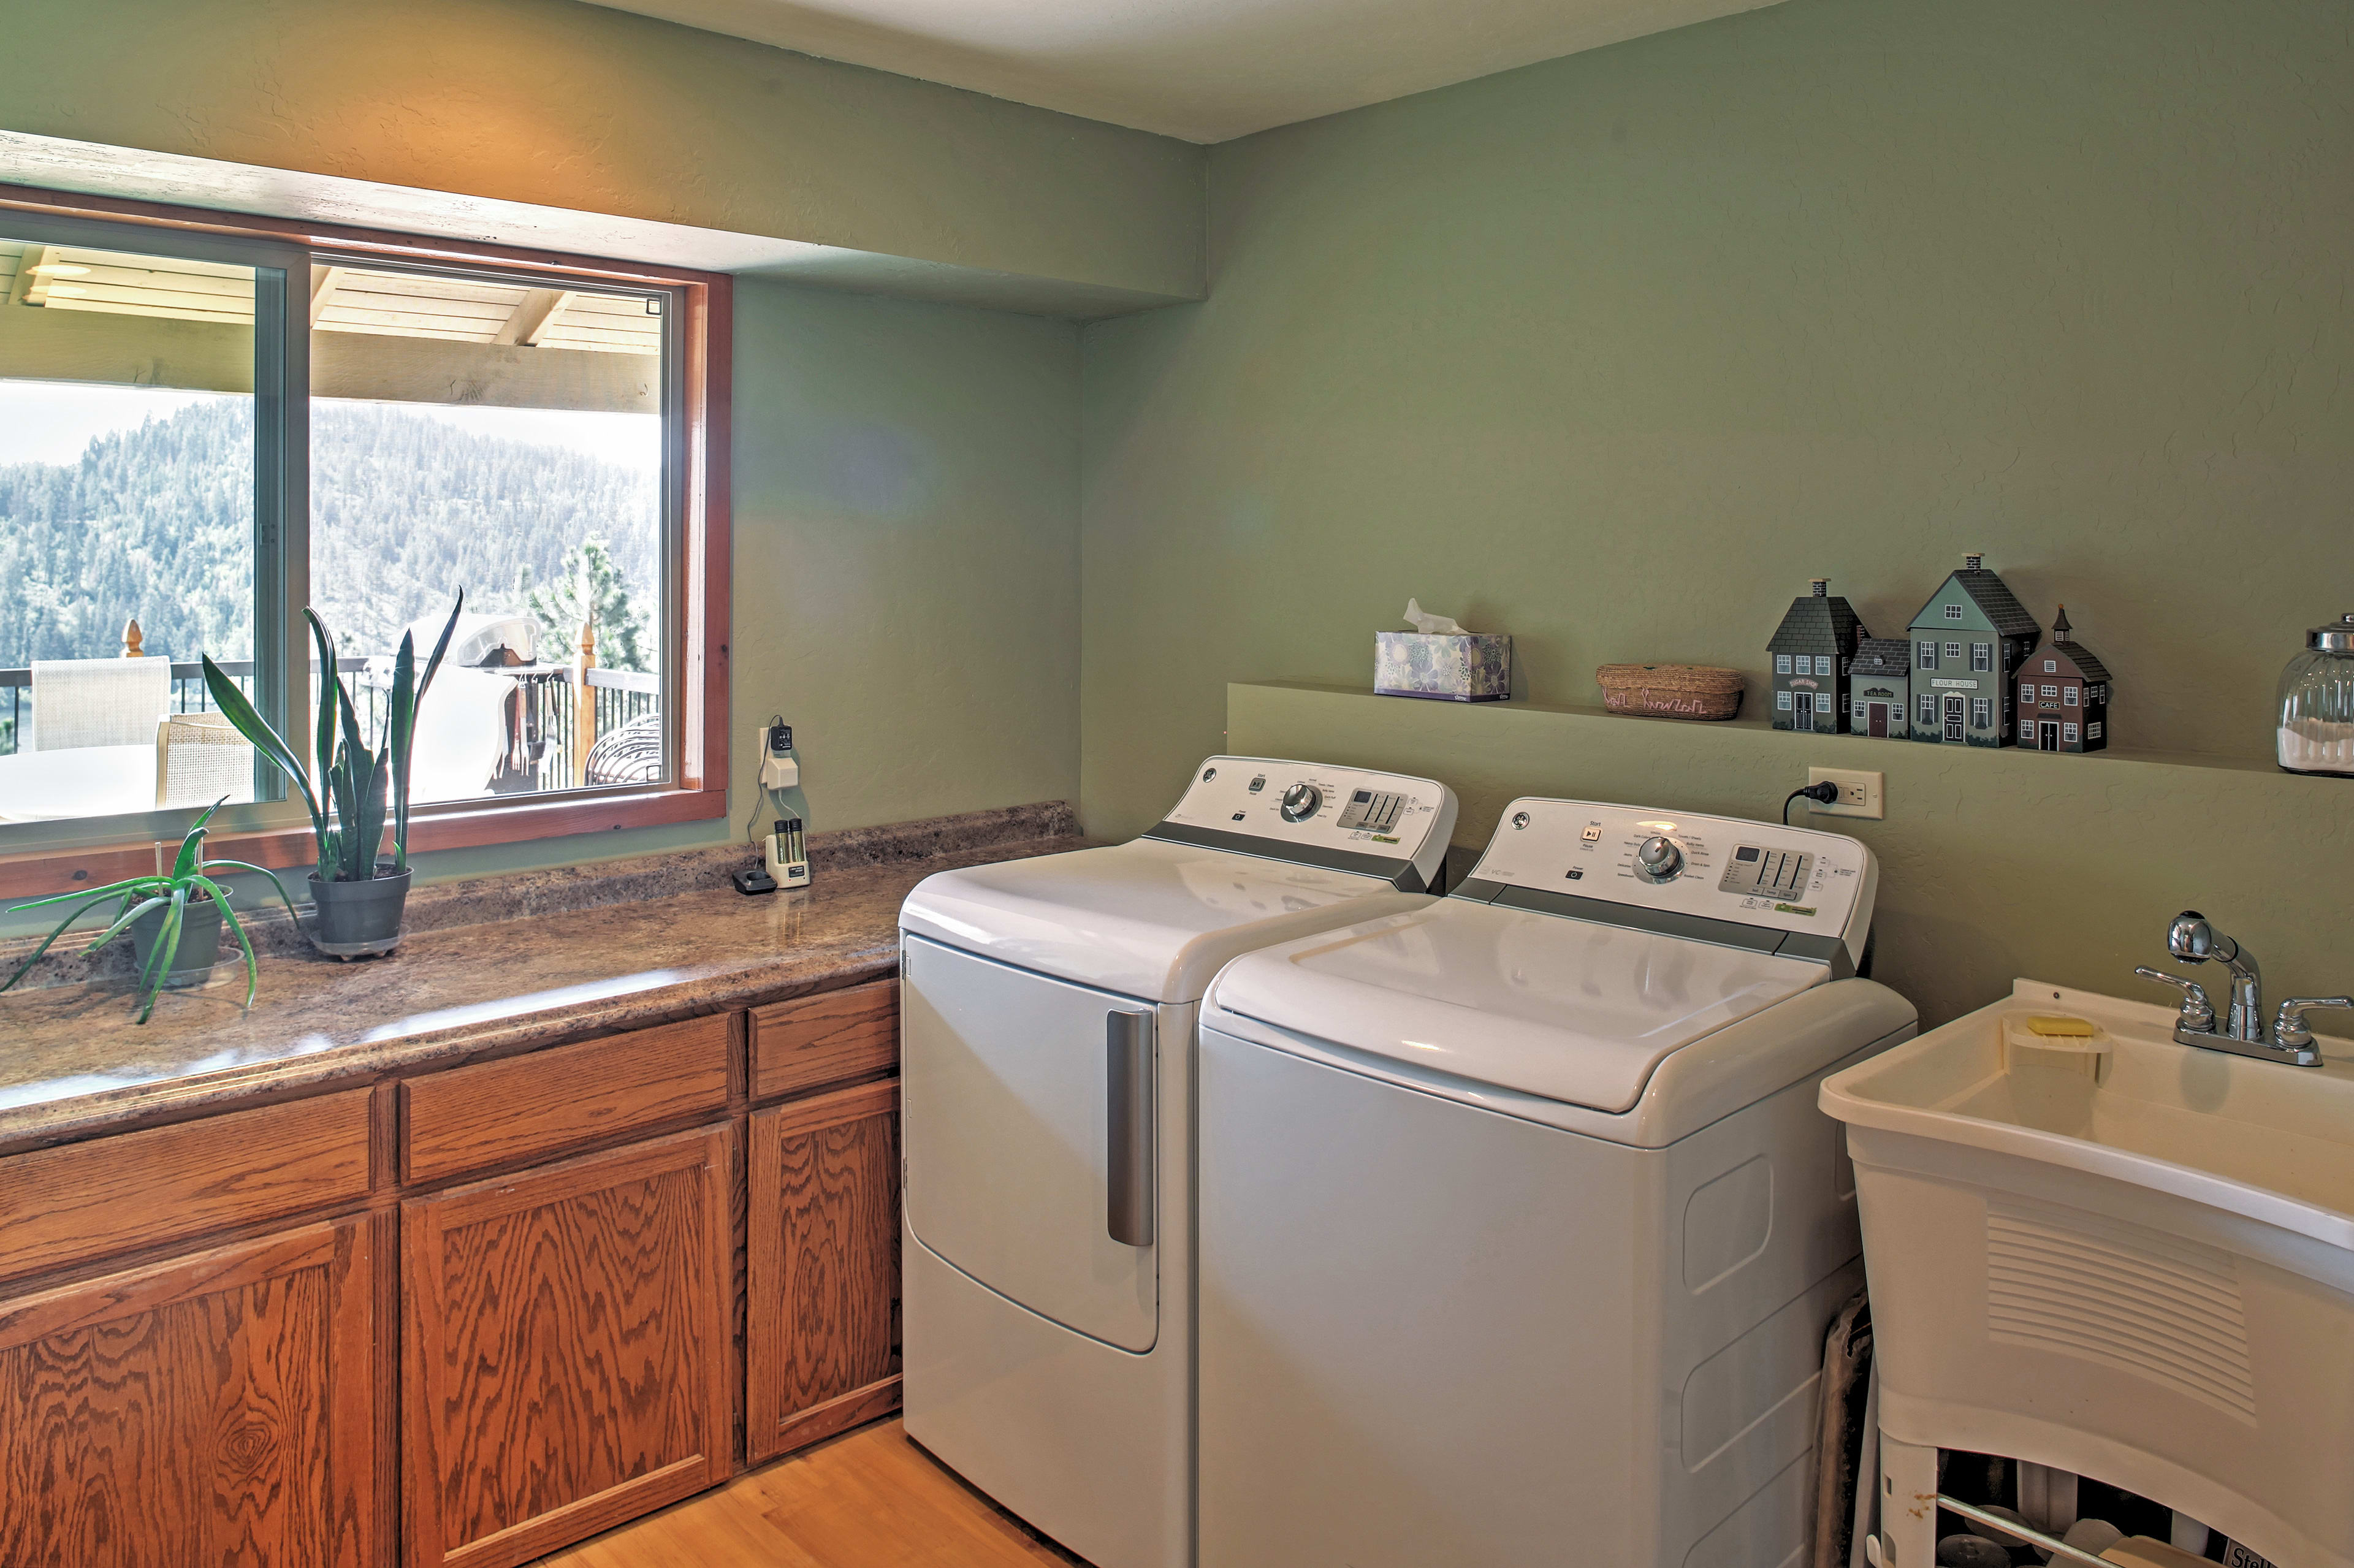 A washer and dryer are added for your convenience.